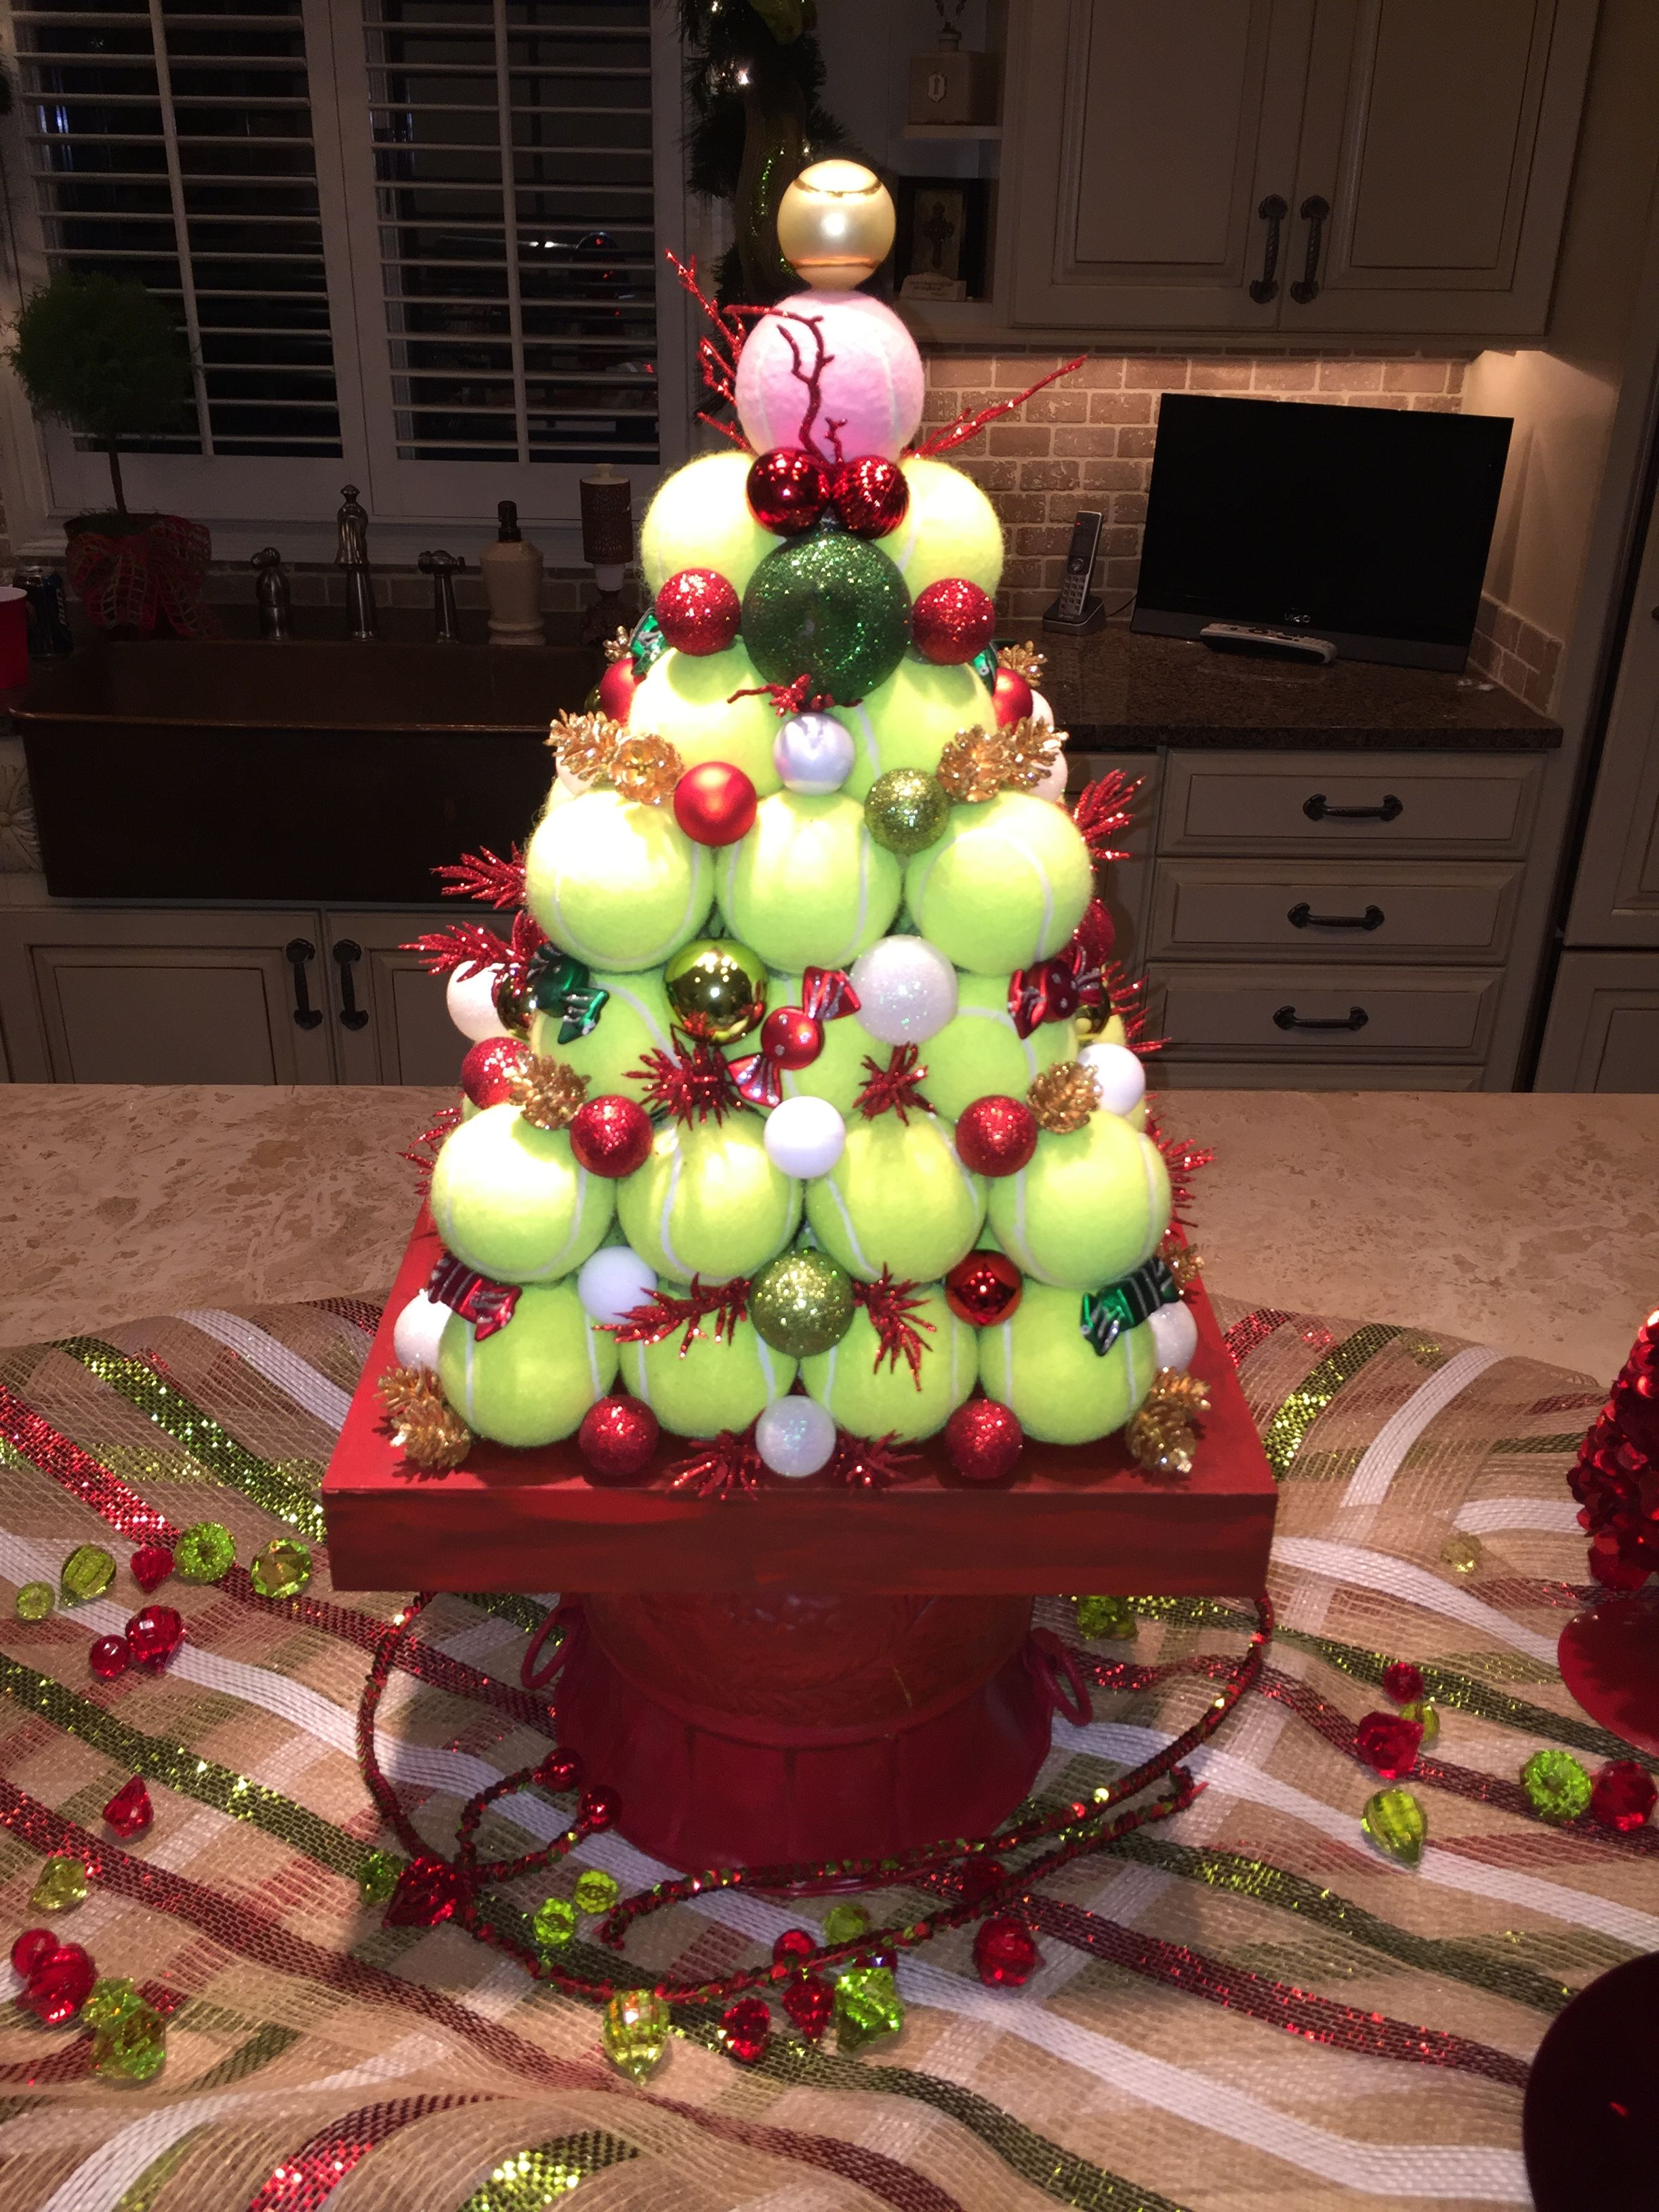 Awesome christmas tree centerpiece made with tennis balls